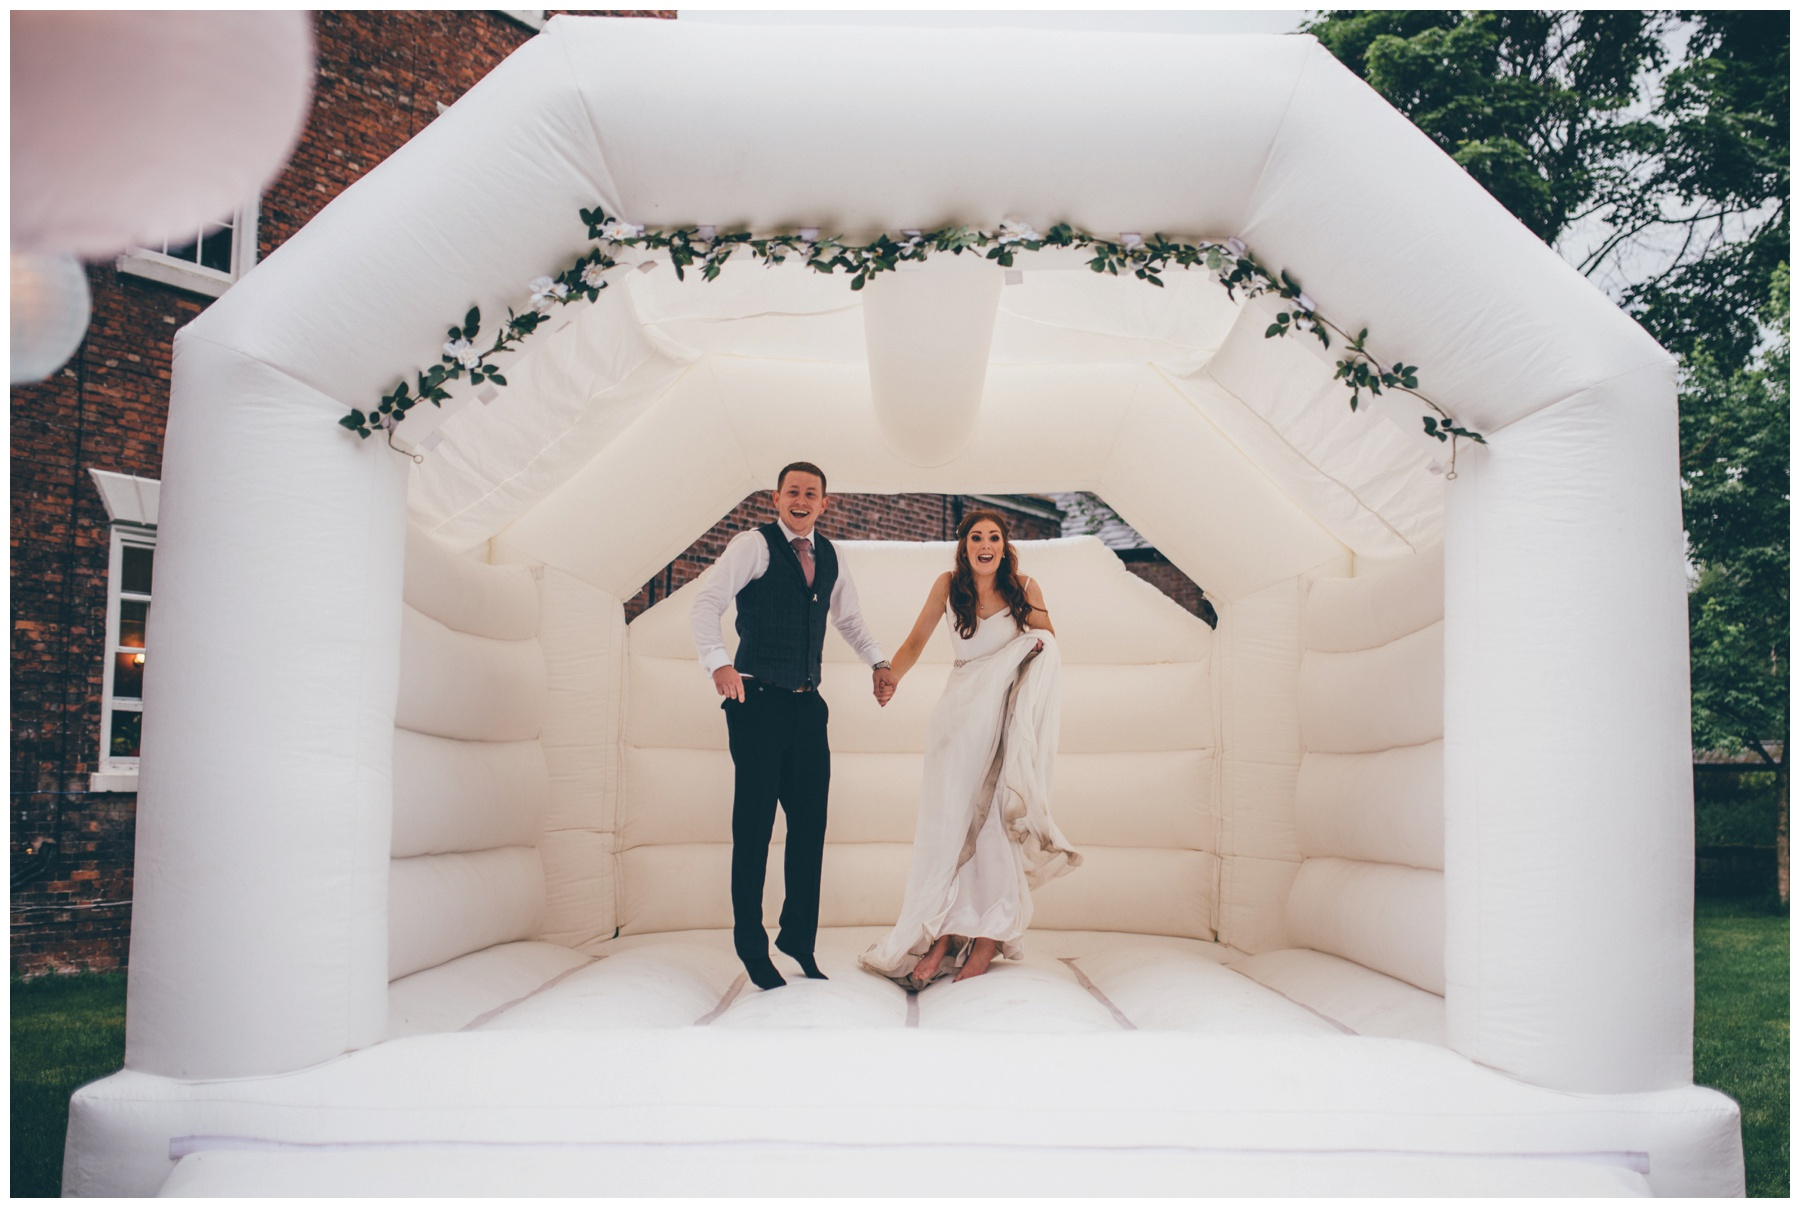 Bride and Groom have fun bouncing on their wedding bouncey castle at Trafford Hall.